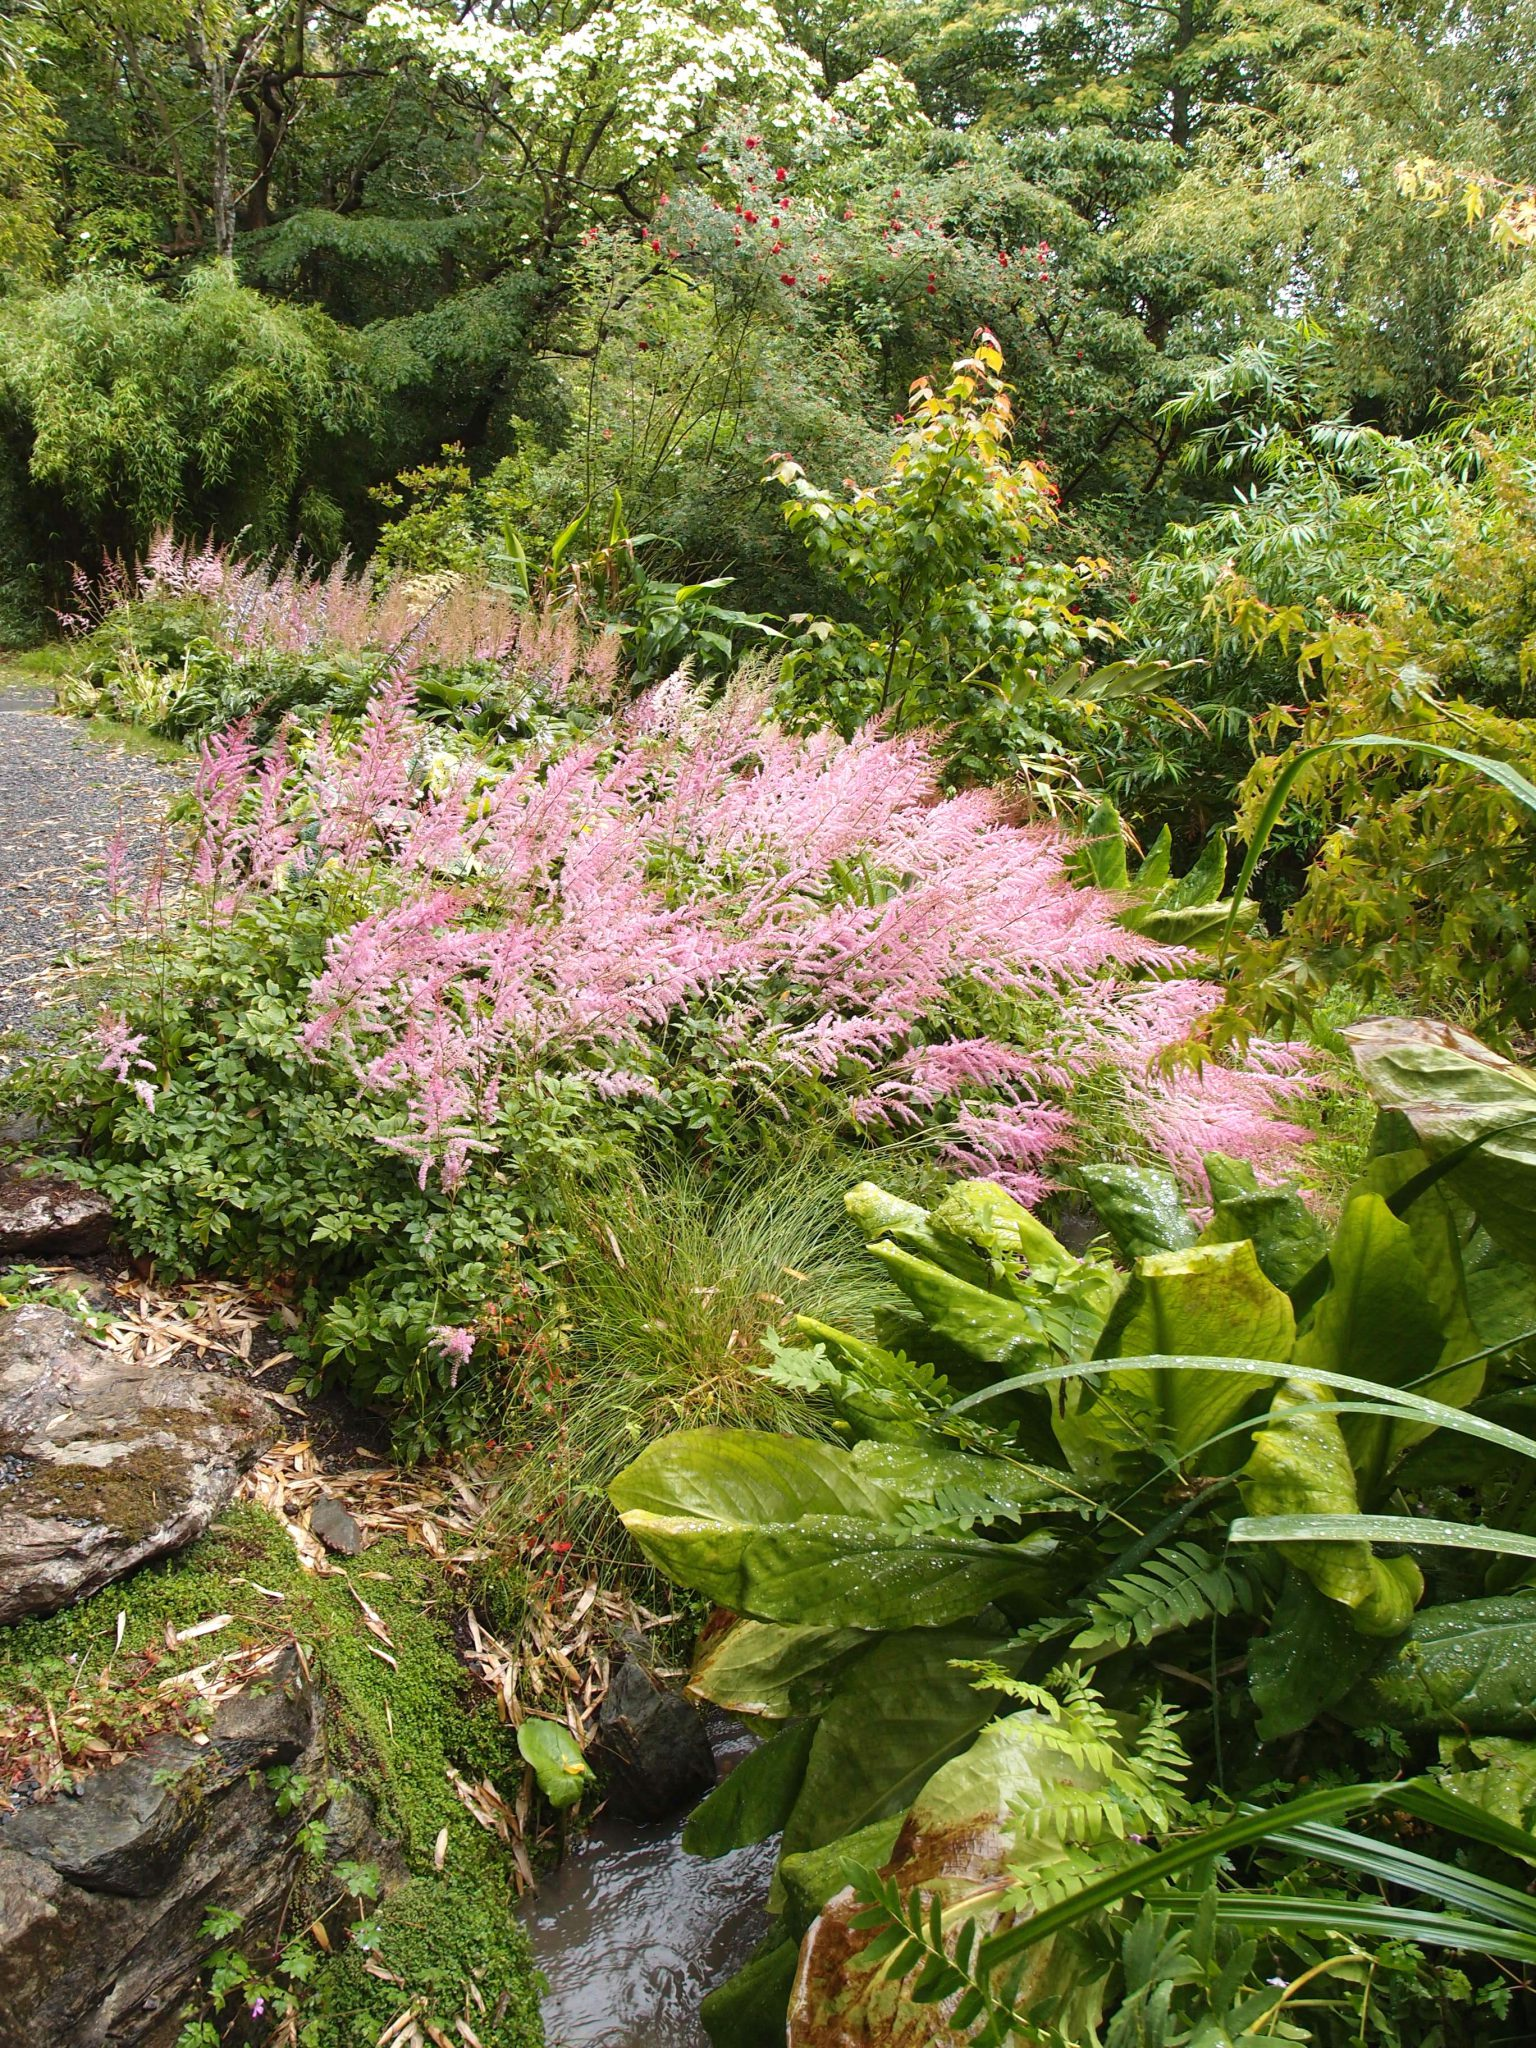 Plantings in the Glade combine traditional English shrubs with tropical exotics